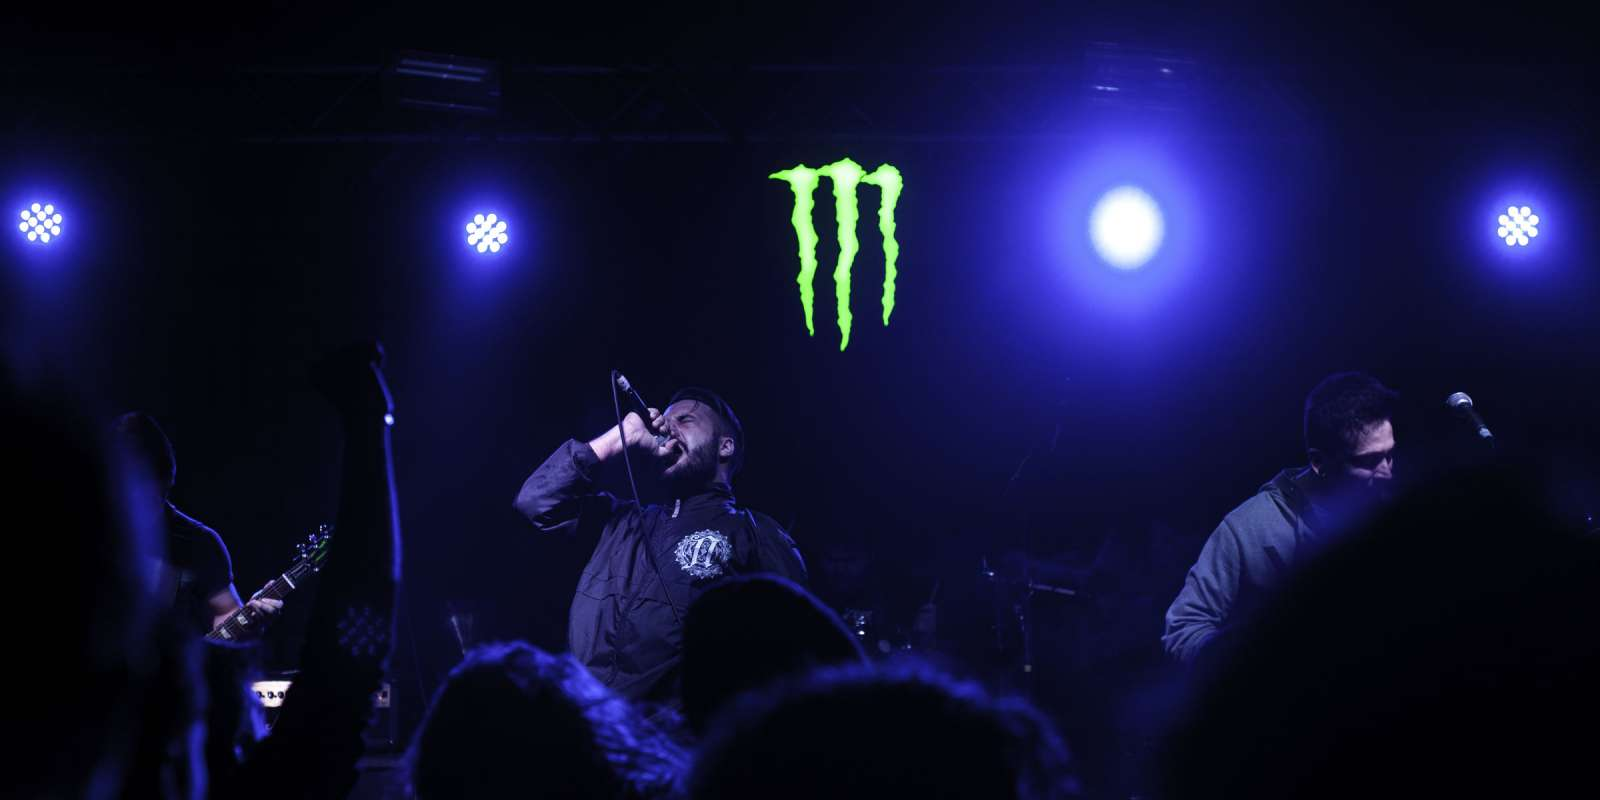 Monster Energy at the BlankFile and Violent Chapter concert